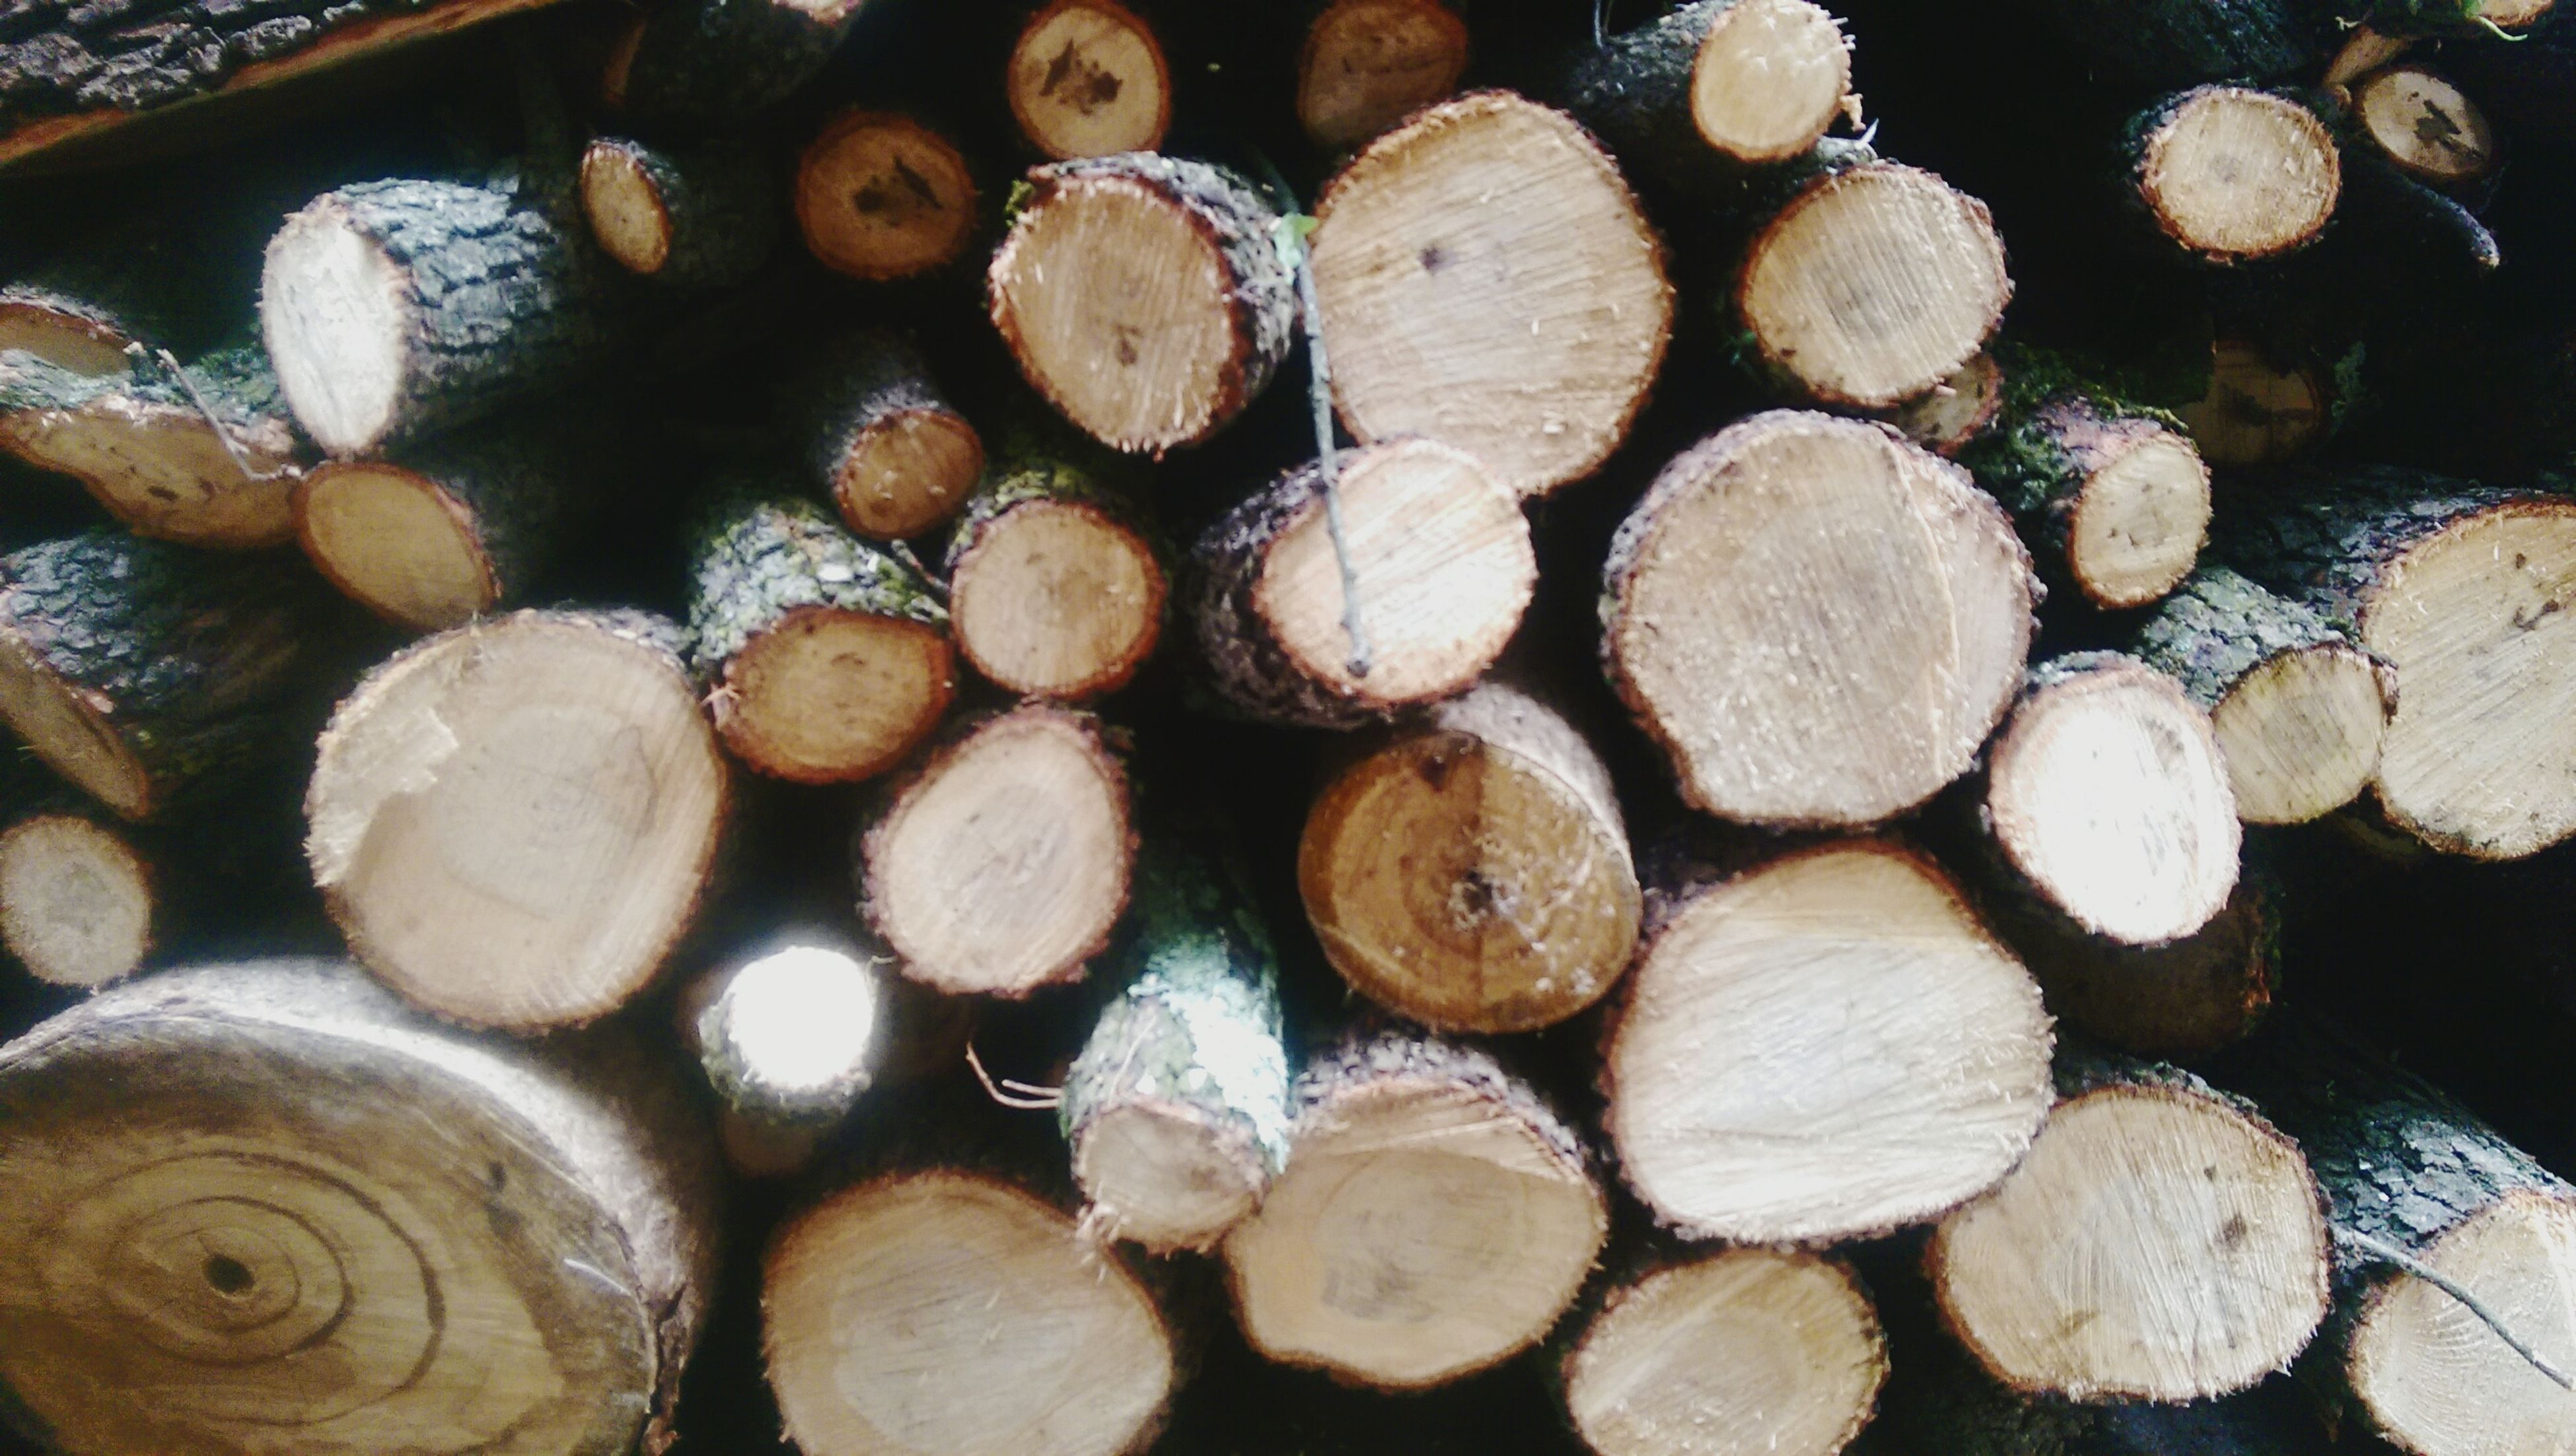 large group of objects, abundance, log, lumber industry, deforestation, stack, wood - material, firewood, full frame, high angle view, backgrounds, food and drink, nut - food, still life, heap, food, brown, close-up, wood, timber